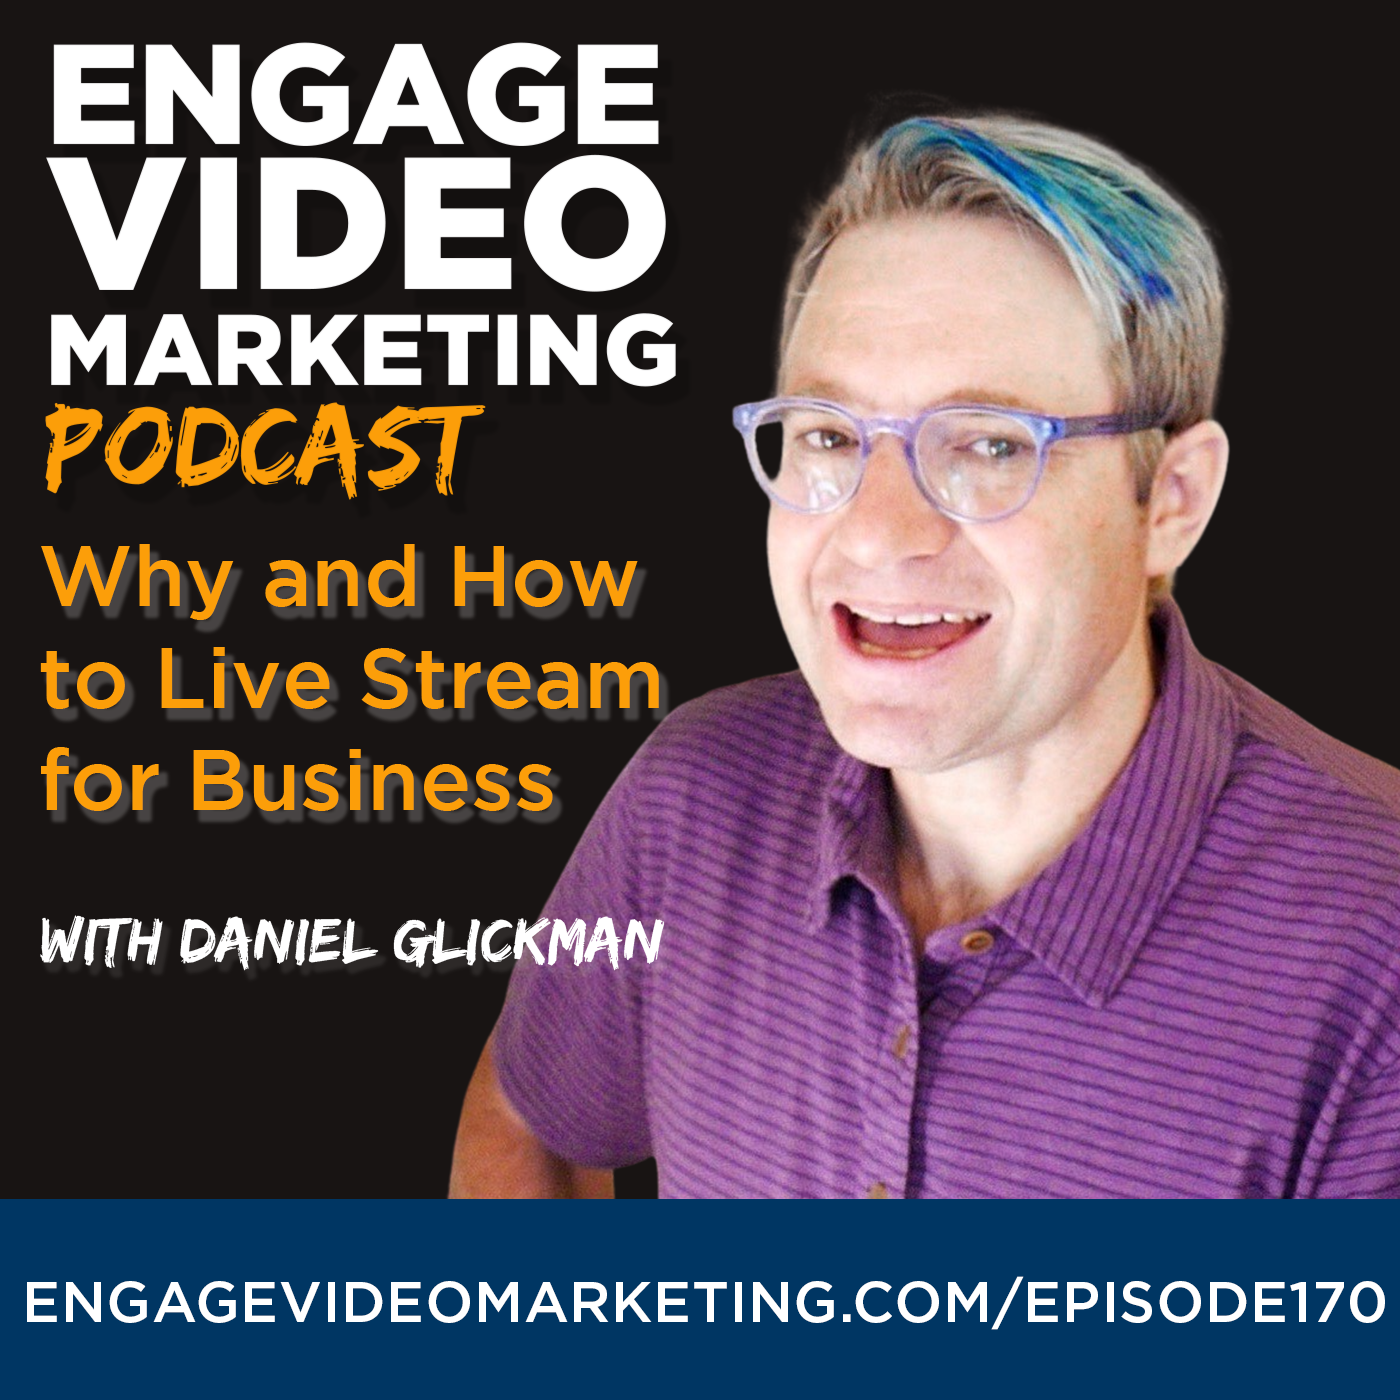 Why & How to Live Stream for Business with Daniel Glickman